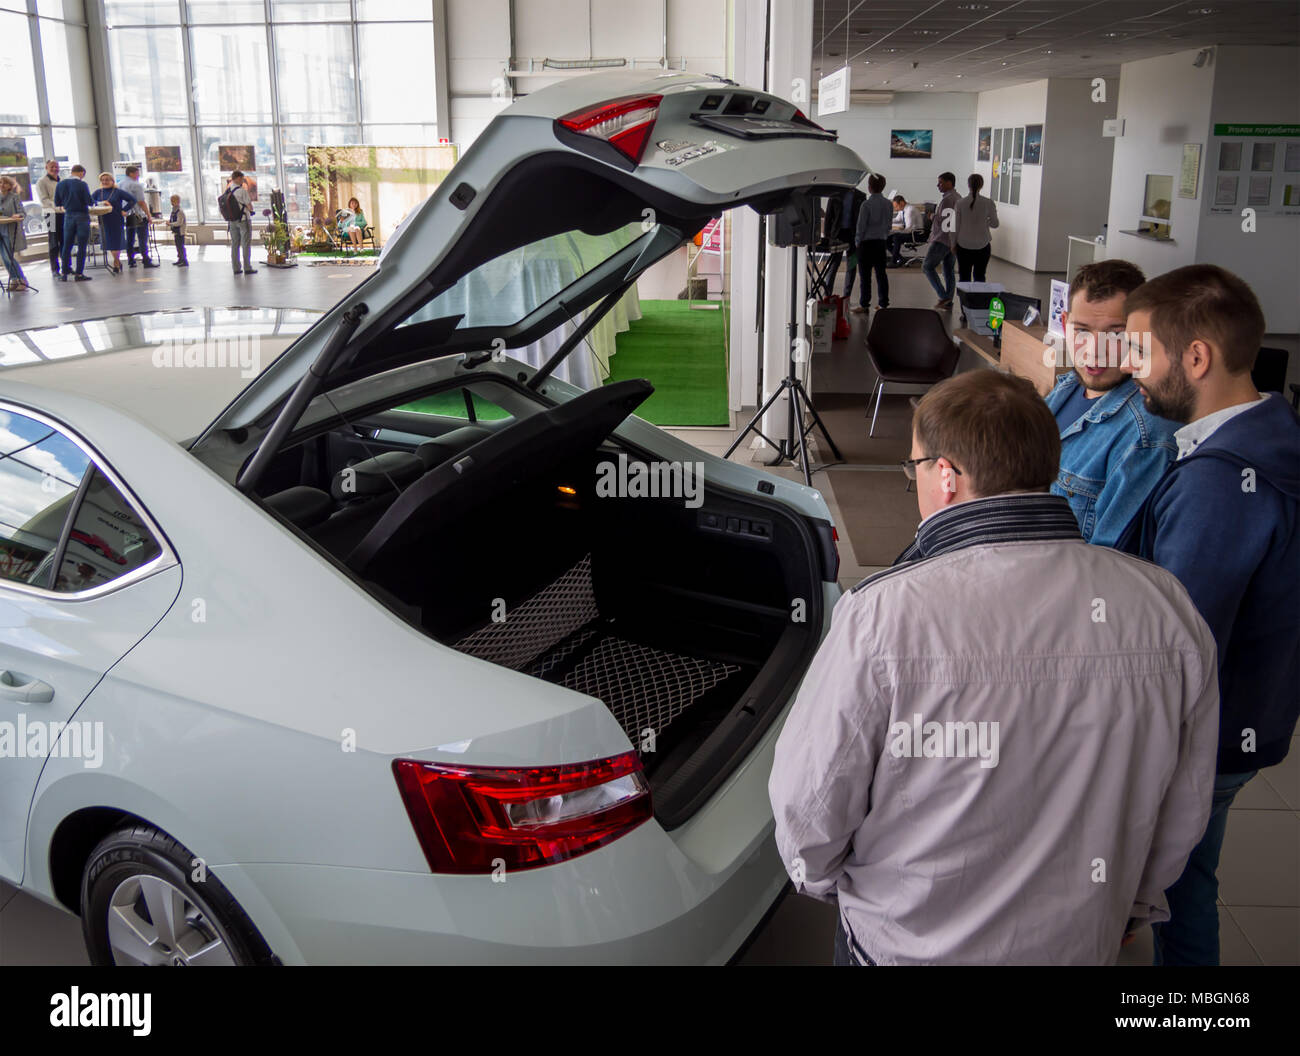 Voronezh, Russia - June 04, 2017: Buyers evaluate the trunk of a new car - Stock Image